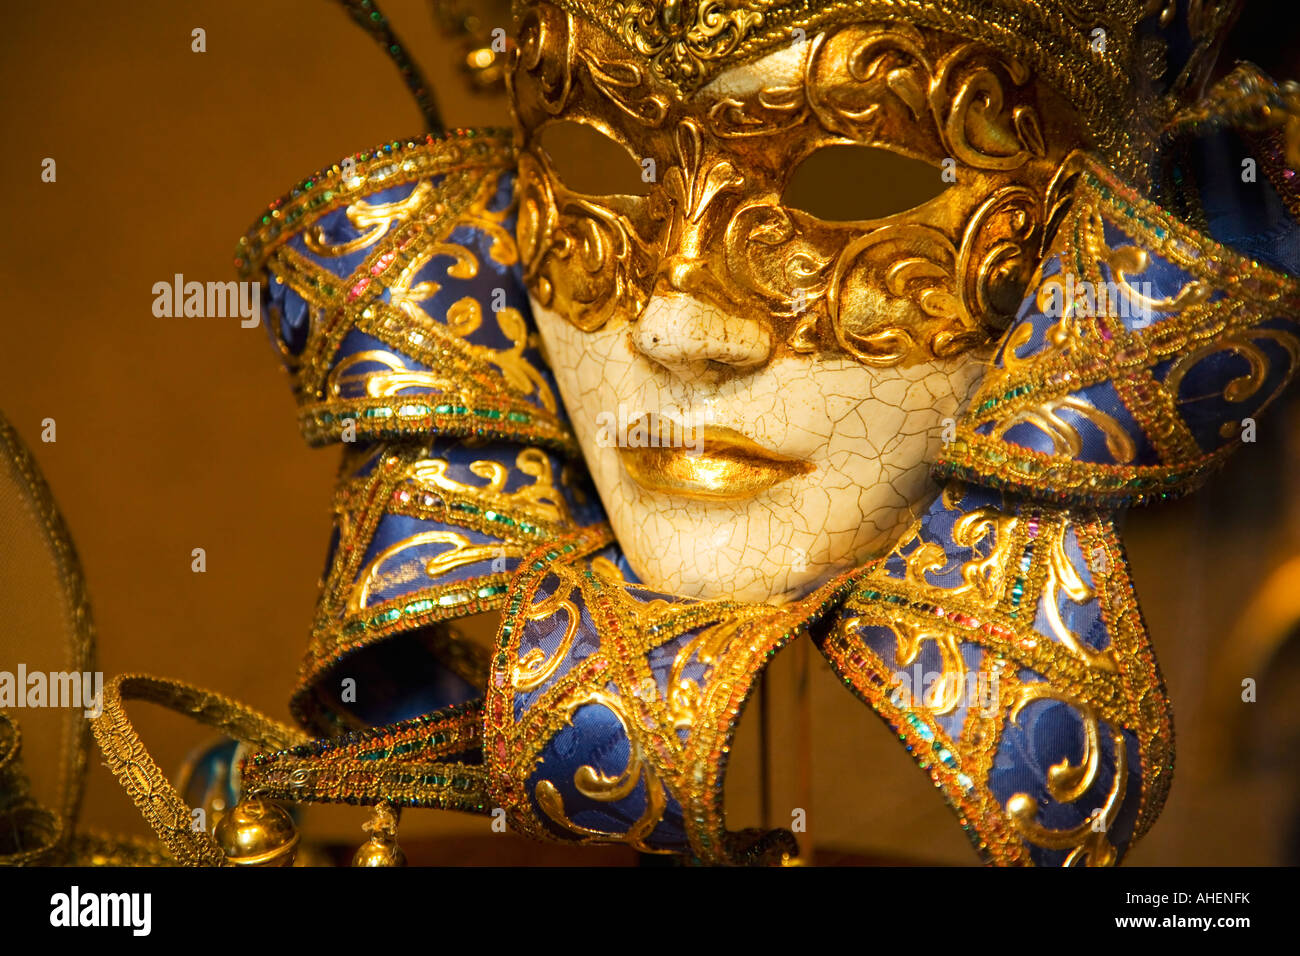 Venetian carnival mask in blue and gold womans handmade in shop window Venice Italy Europe EU - Stock Image